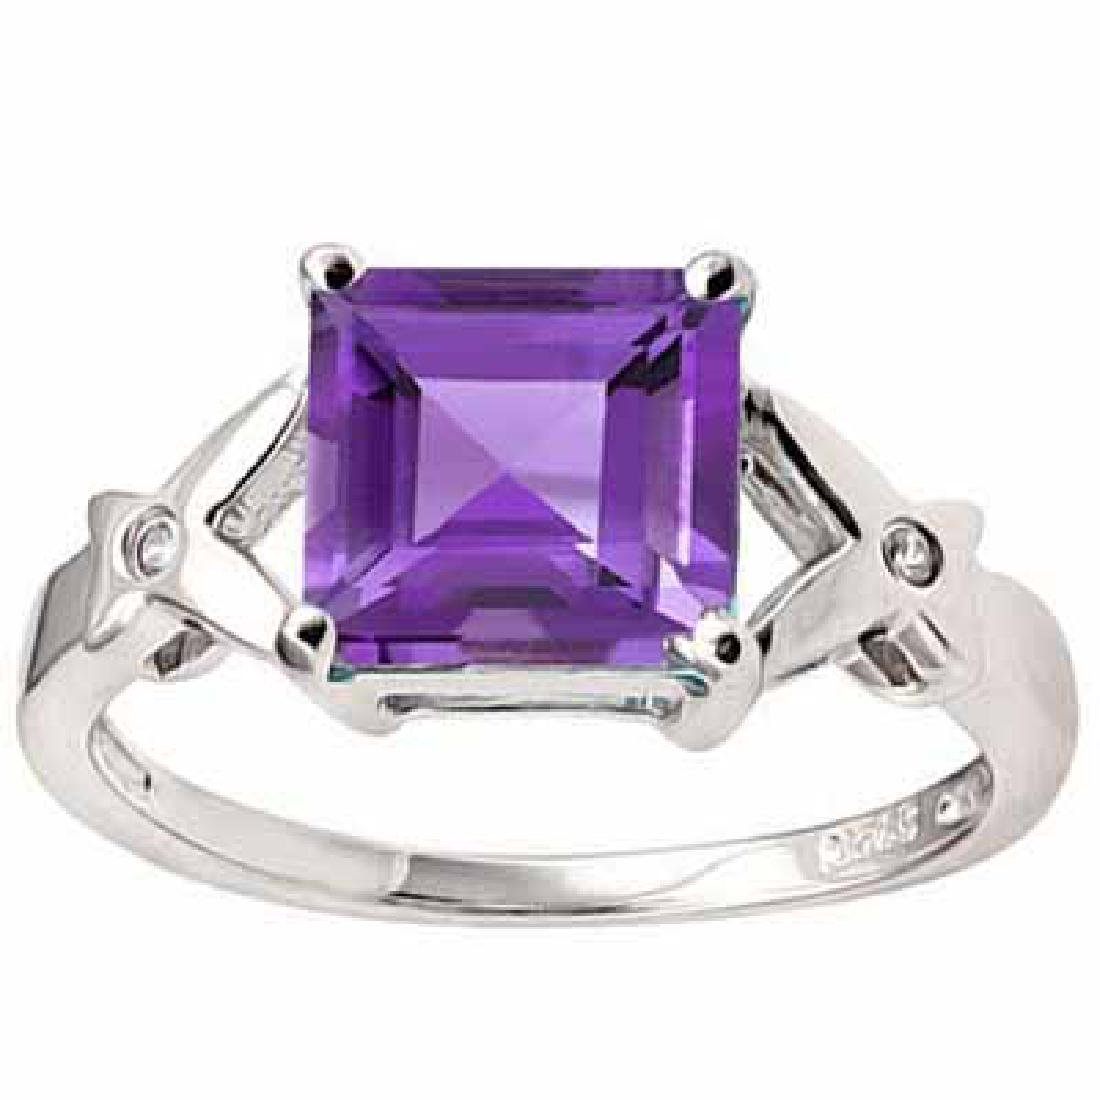 2 3/5 CARAT AMETHYST & CREATED WHITE SAPPHIRE 925 STERL